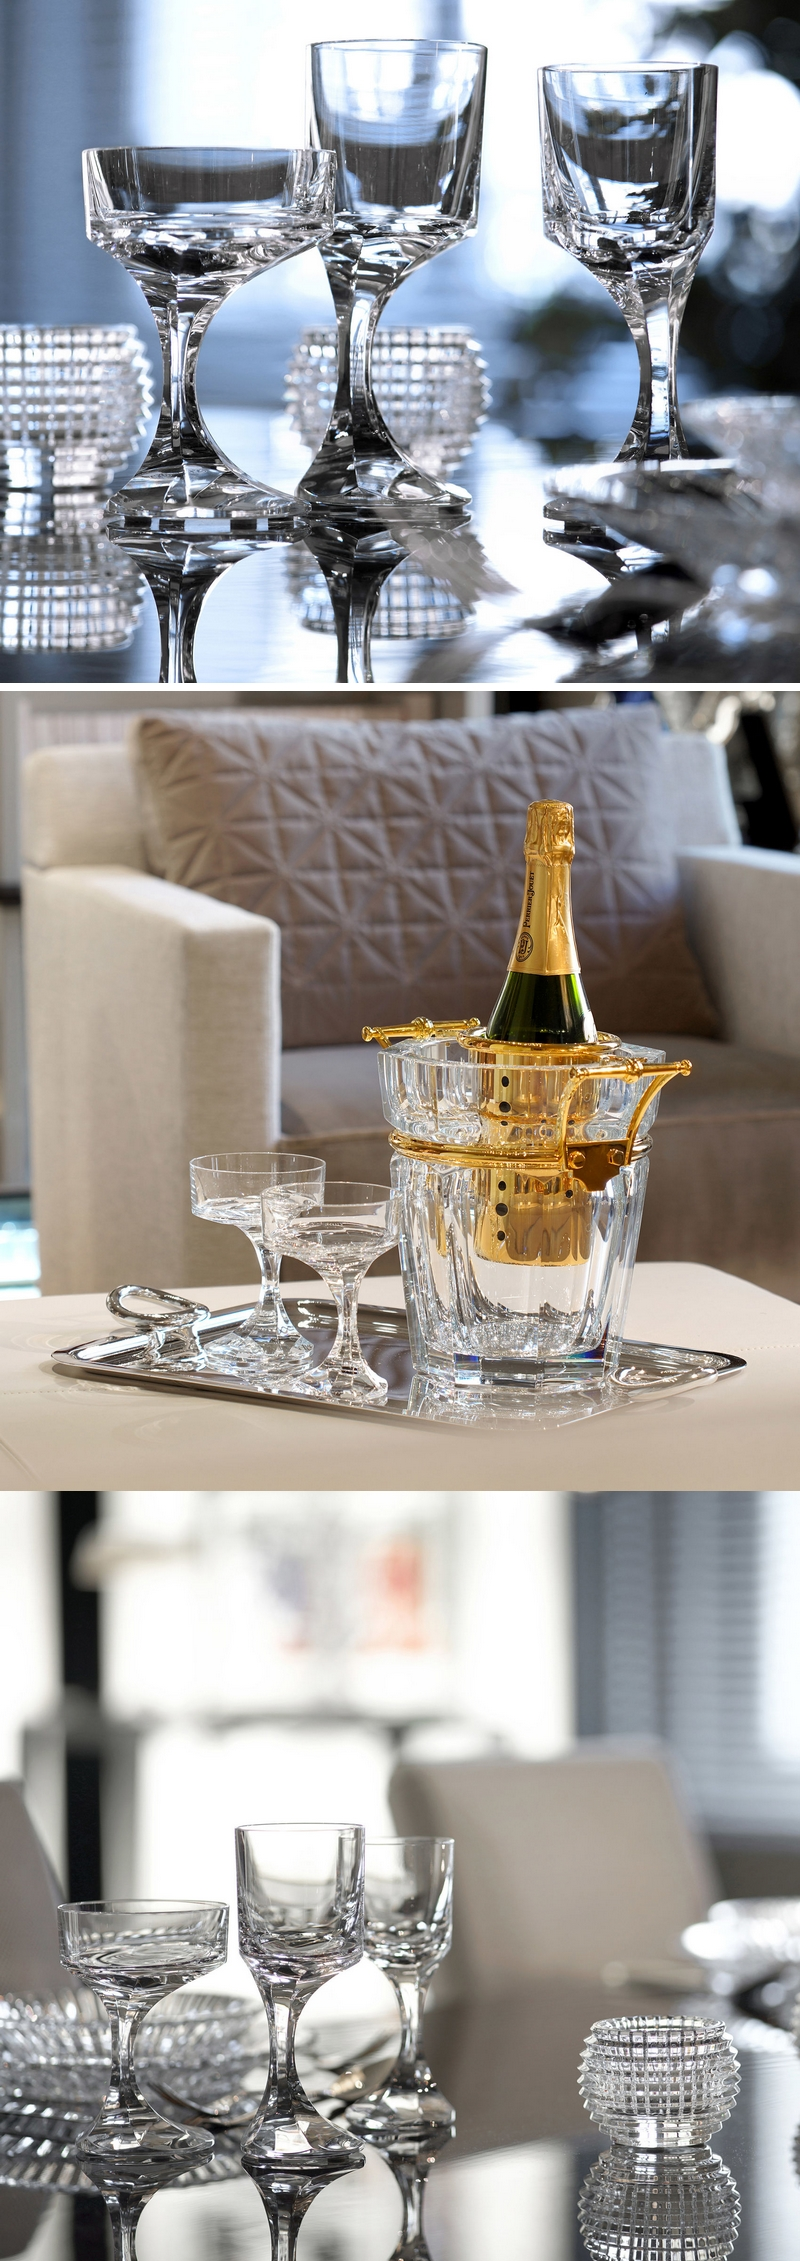 Baccarat The Narcisse collection -Champagne Coupe Photos